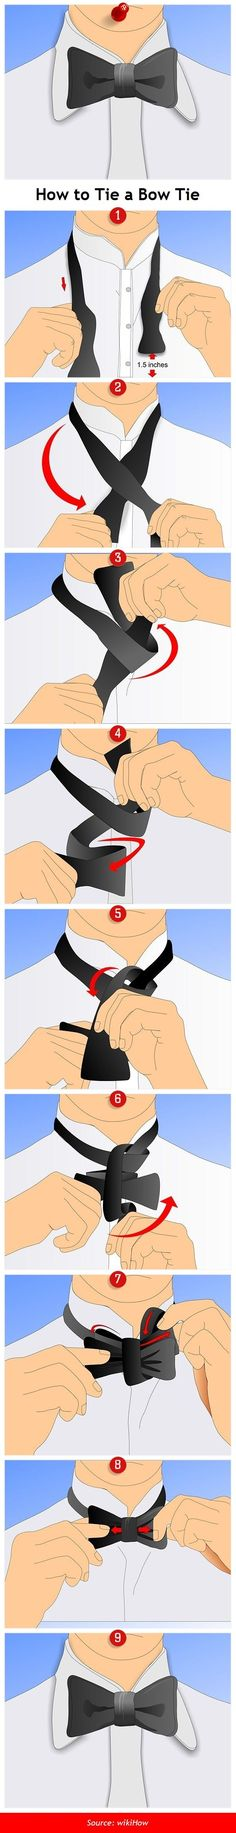 Every man need to learn to make a bow tie! #men #mensfashion #menswear #style #outfit #fashion